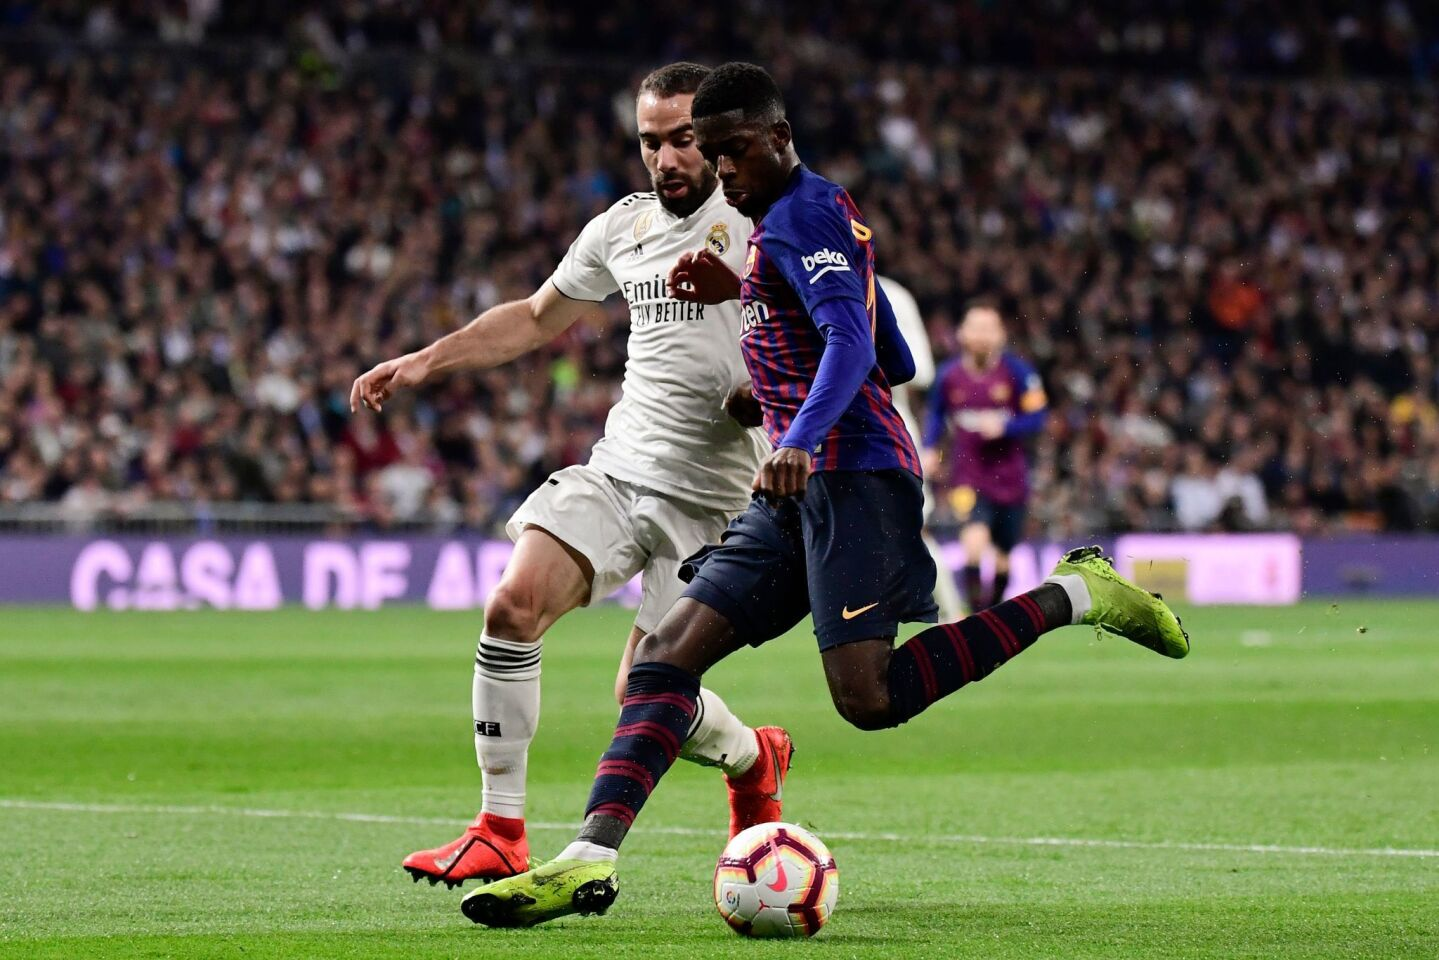 Barcelona's French forward Ousmane Dembele (R) challenges Real Madrid's Spanish defender Dani Carvajal during the Spanish league football match between Real Madrid CF and FC Barcelona at the Santiago Bernabeu stadium in Madrid on March 2, 2019. (Photo by JAVIER SORIANO / AFP)JAVIER SORIANO/AFP/Getty Images ** OUTS - ELSENT, FPG, CM - OUTS * NM, PH, VA if sourced by CT, LA or MoD **